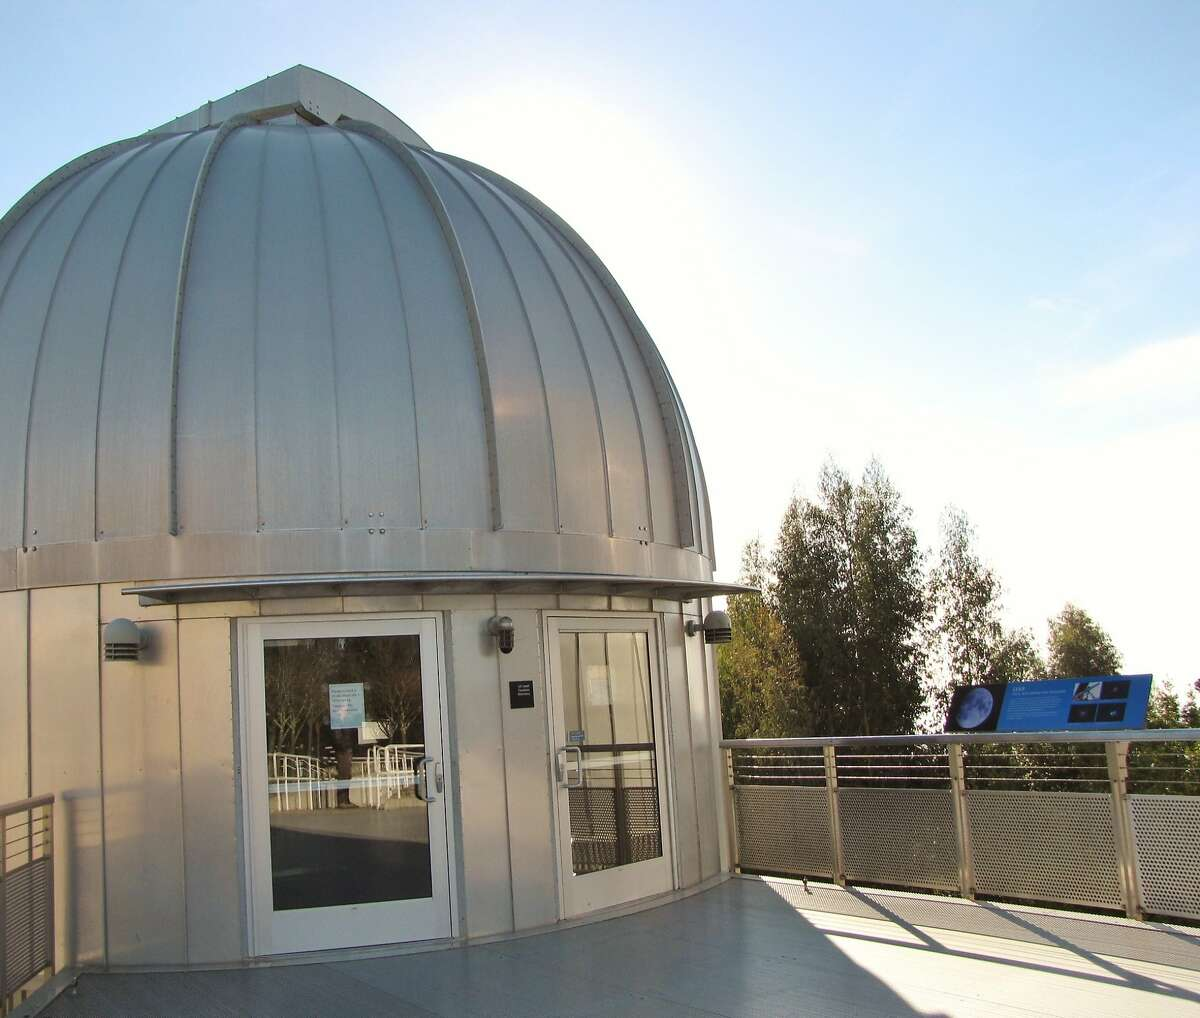 Chabot Space and Science Center in Oakland.